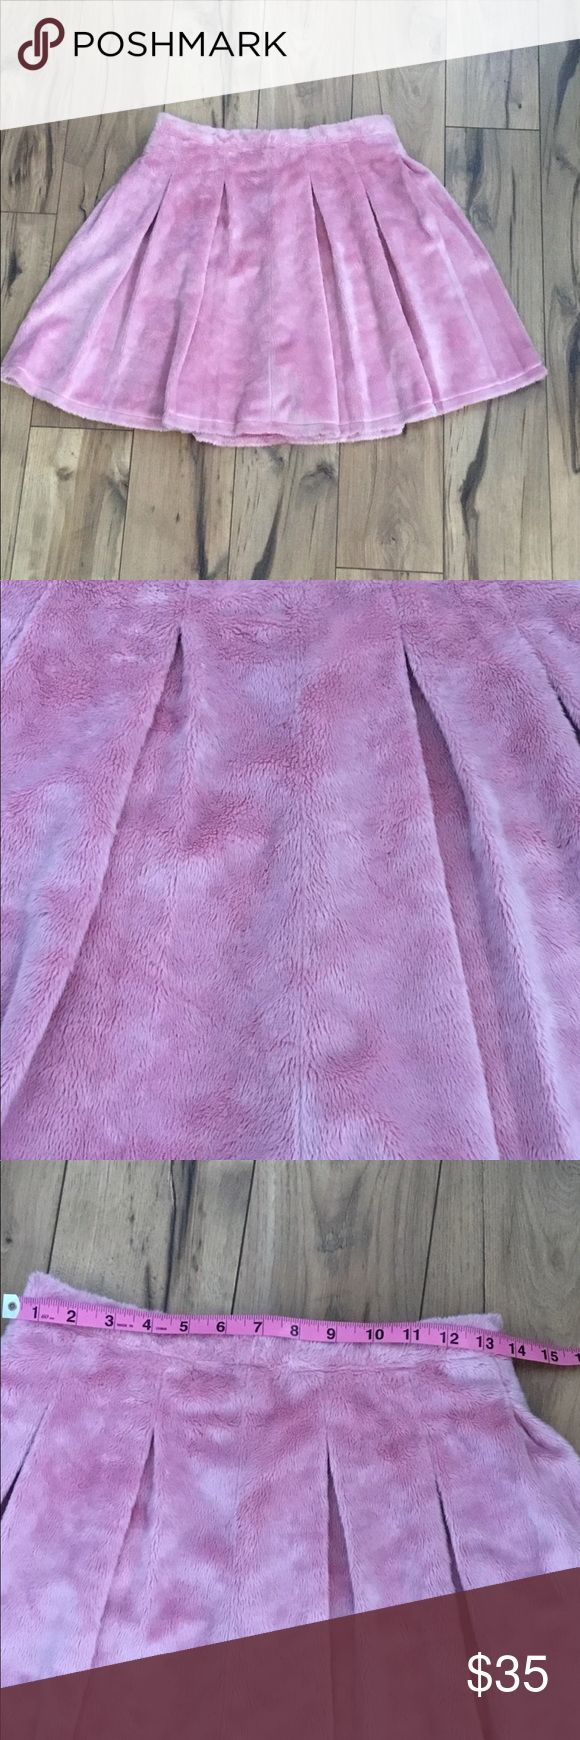 Tuesday Bassen Fuzz Kill Pink Skater Skirt, Sz S Fuzzy things are the best. Like... 1